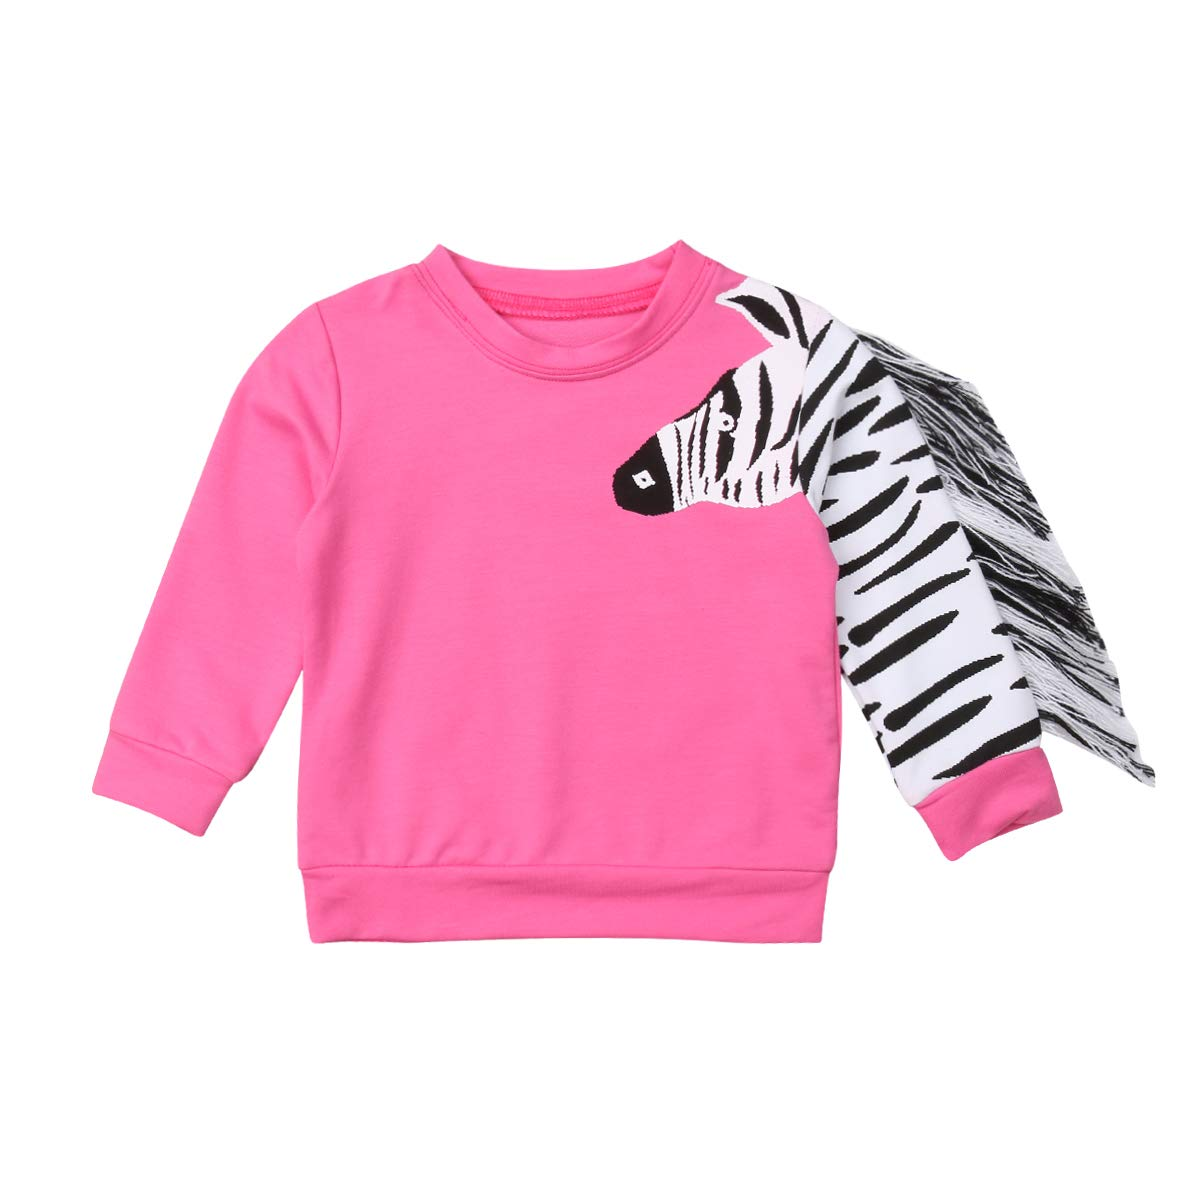 Infant Baby Girl Zebra Tassel Top Long Sleeve Tee Shirt Sweatshirt Clothes